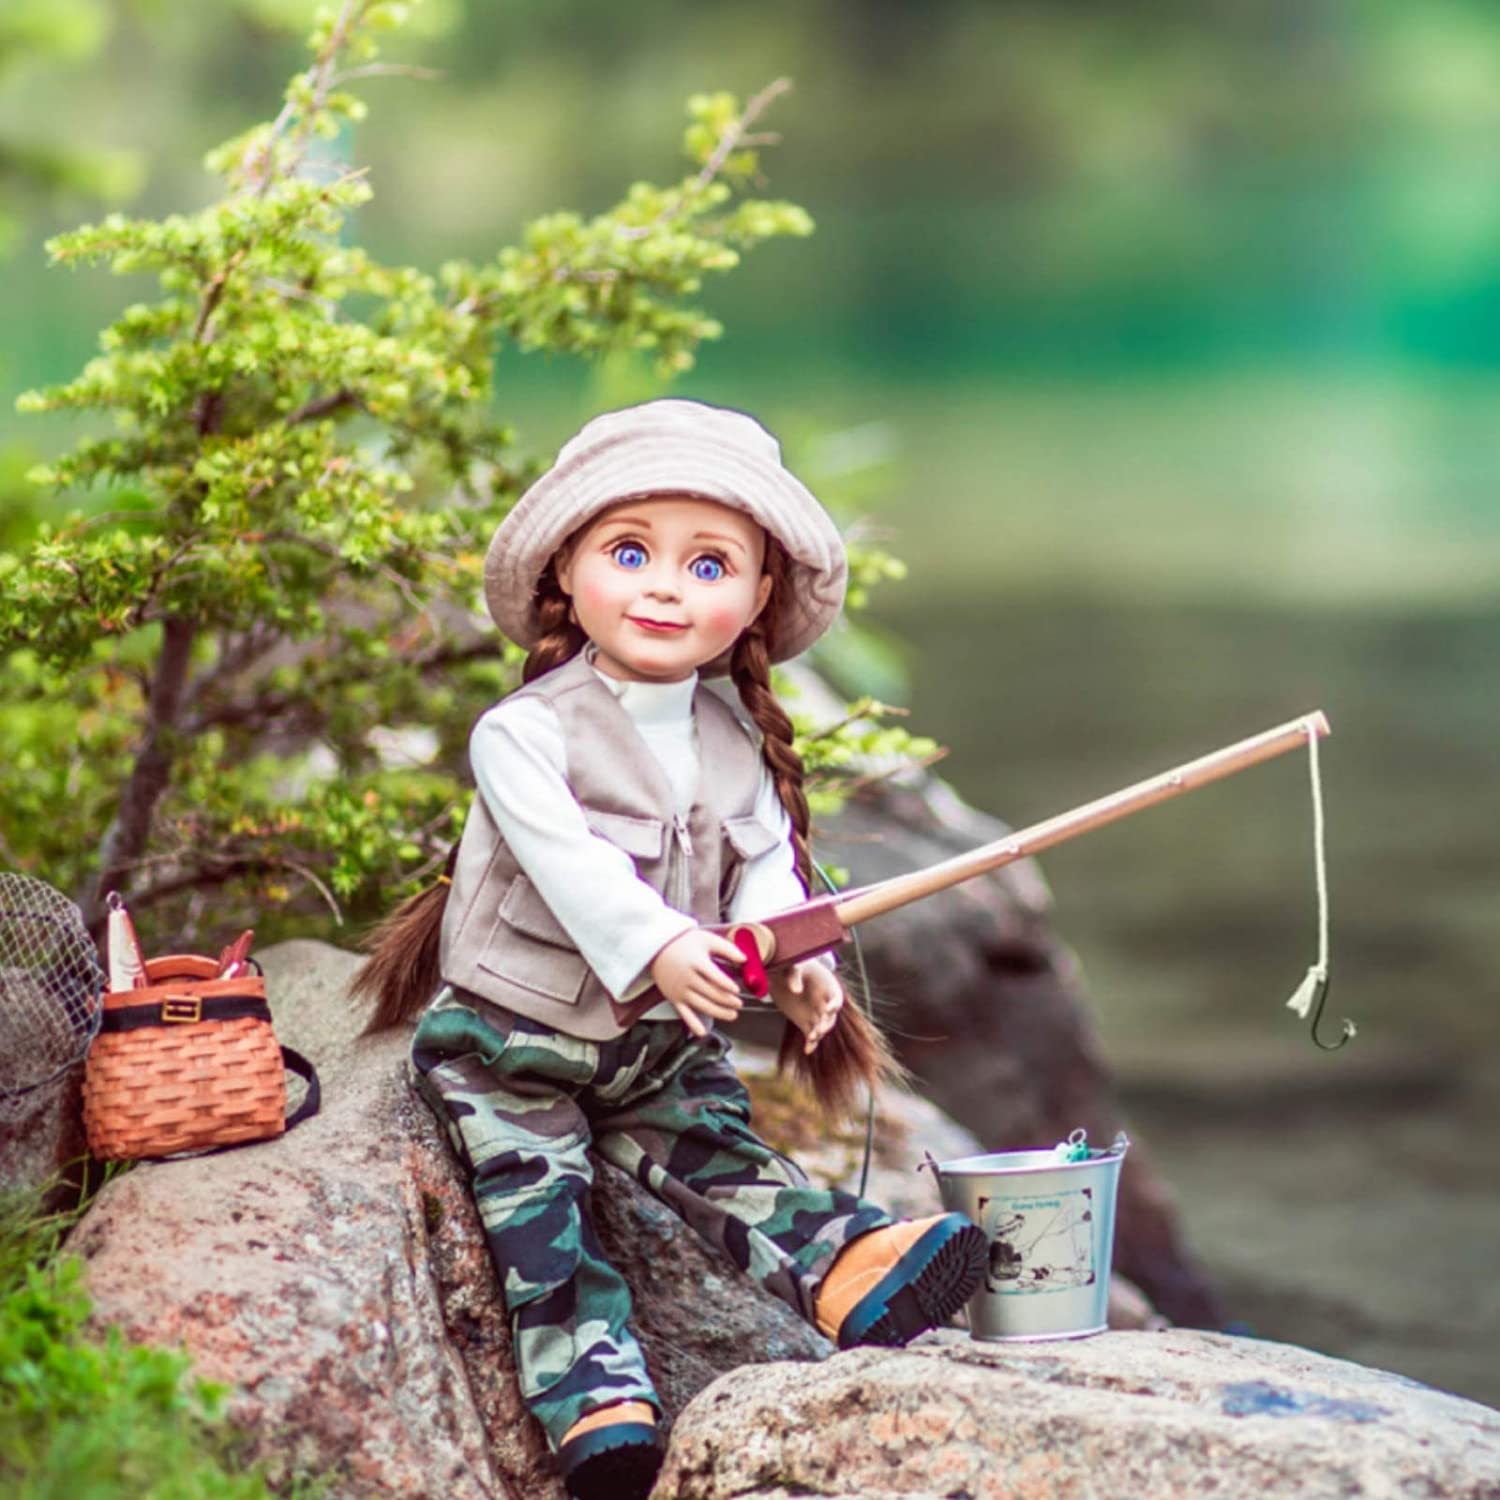 Vest Shirt 18 Inch Doll Fishing Outfit Fits American Girl Hat Pants